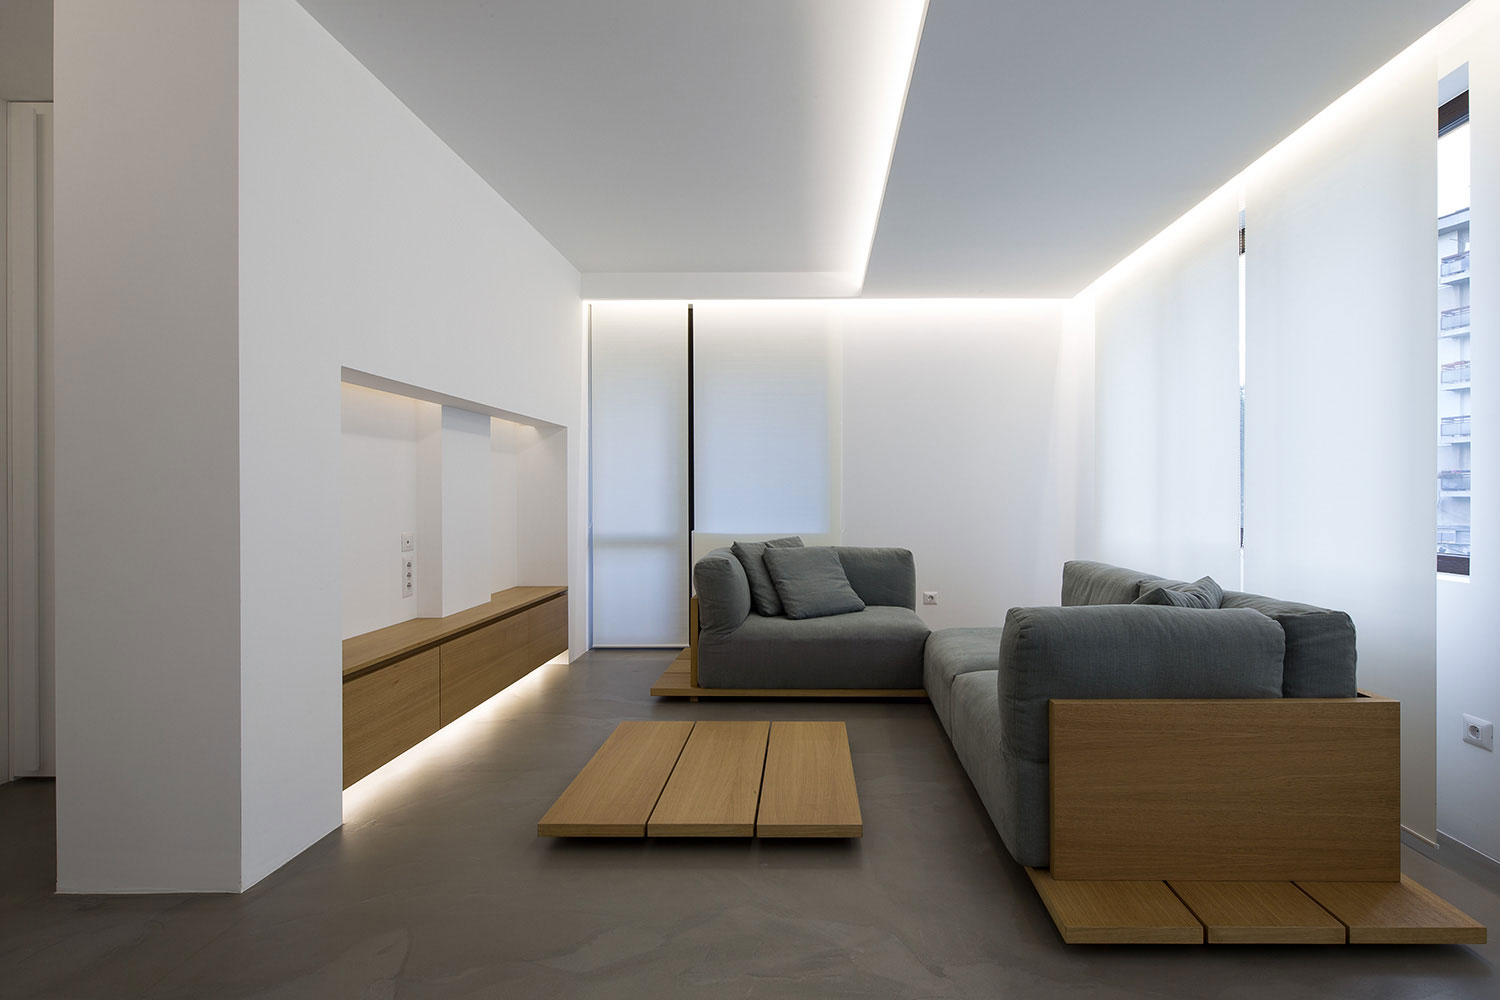 Elia nedkov designs a minimalist interior in sofia bulgaria for Minimalist house interior